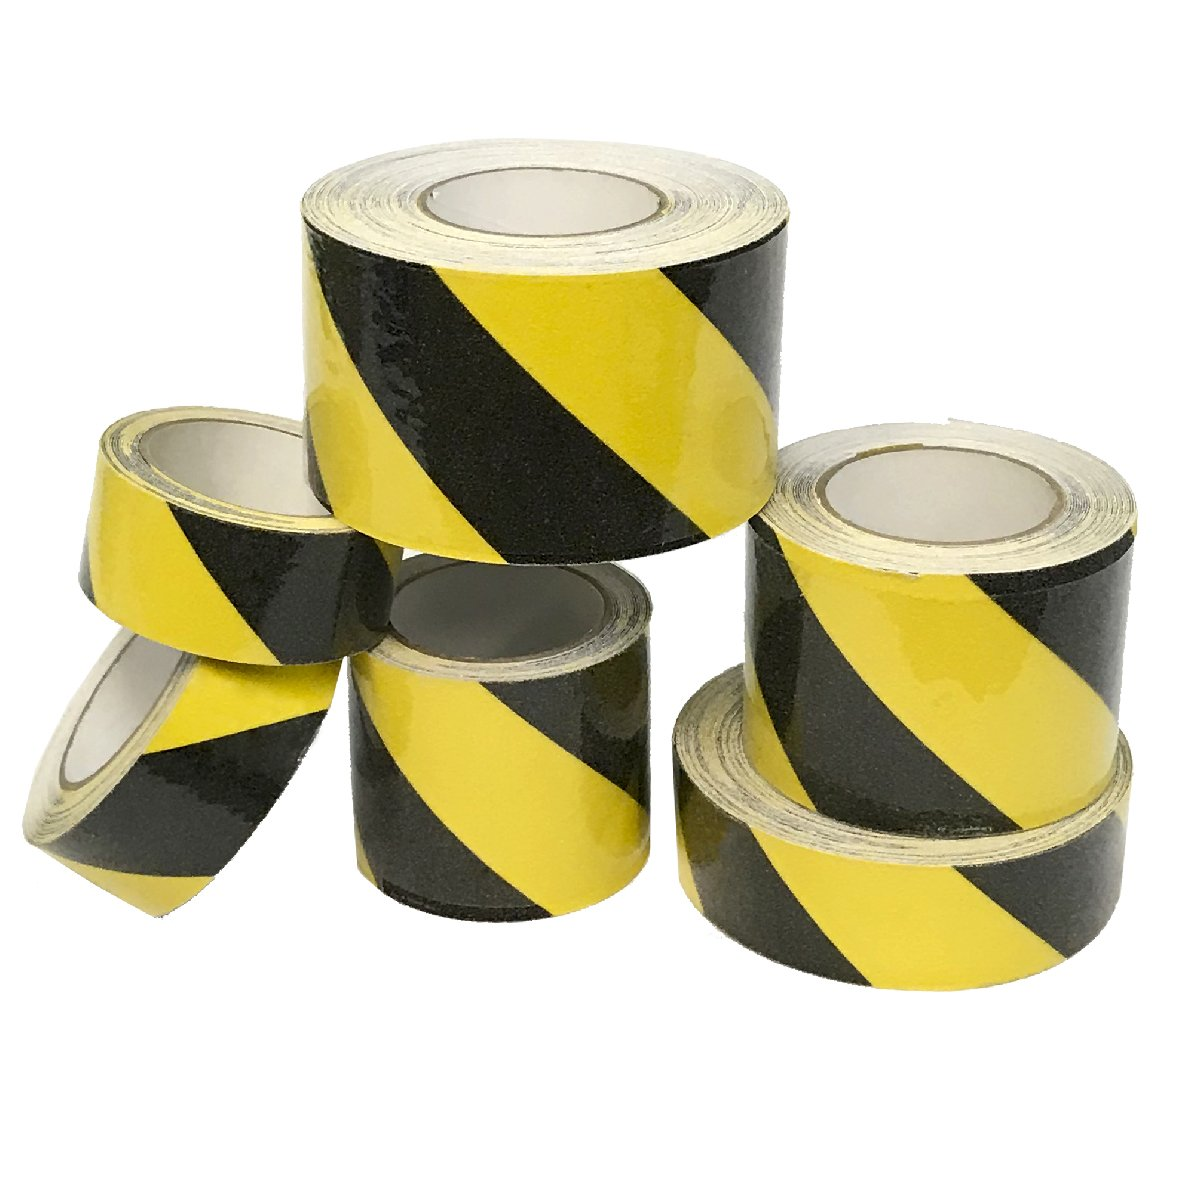 "EasyGoProducts SlipSafe Caution Yellow Black Anti Slip Tape – Indoor Outdoor Caution Yellow Black Safety Tape – Highest Traction Non Skid Tape - Non Slip Traction – 2"" and 4"""